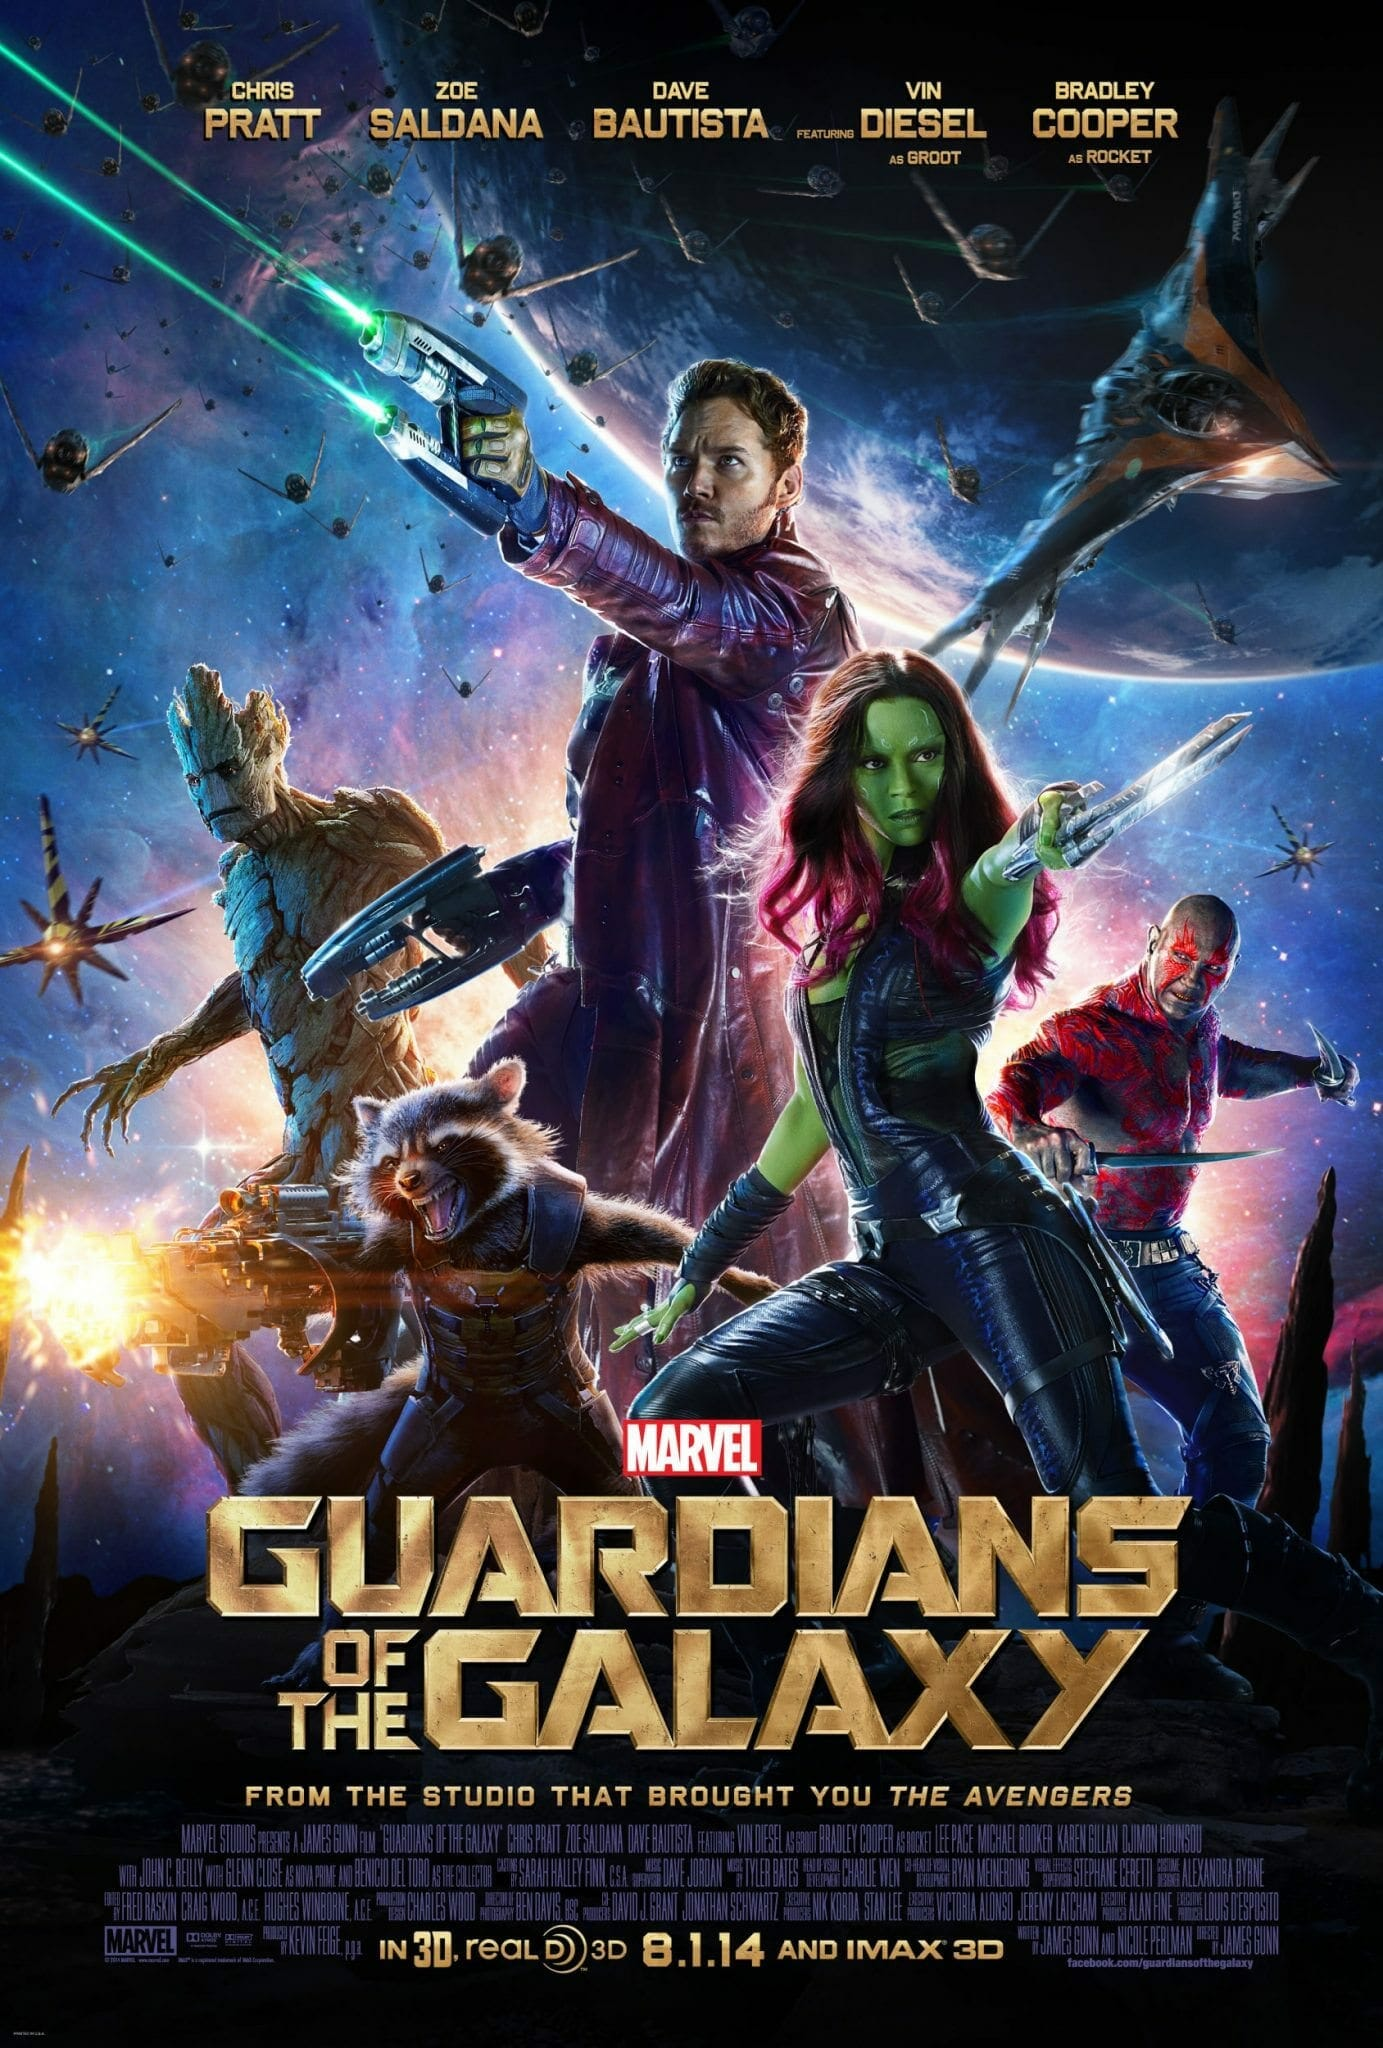 Guardians of the Galaxy almost-cast